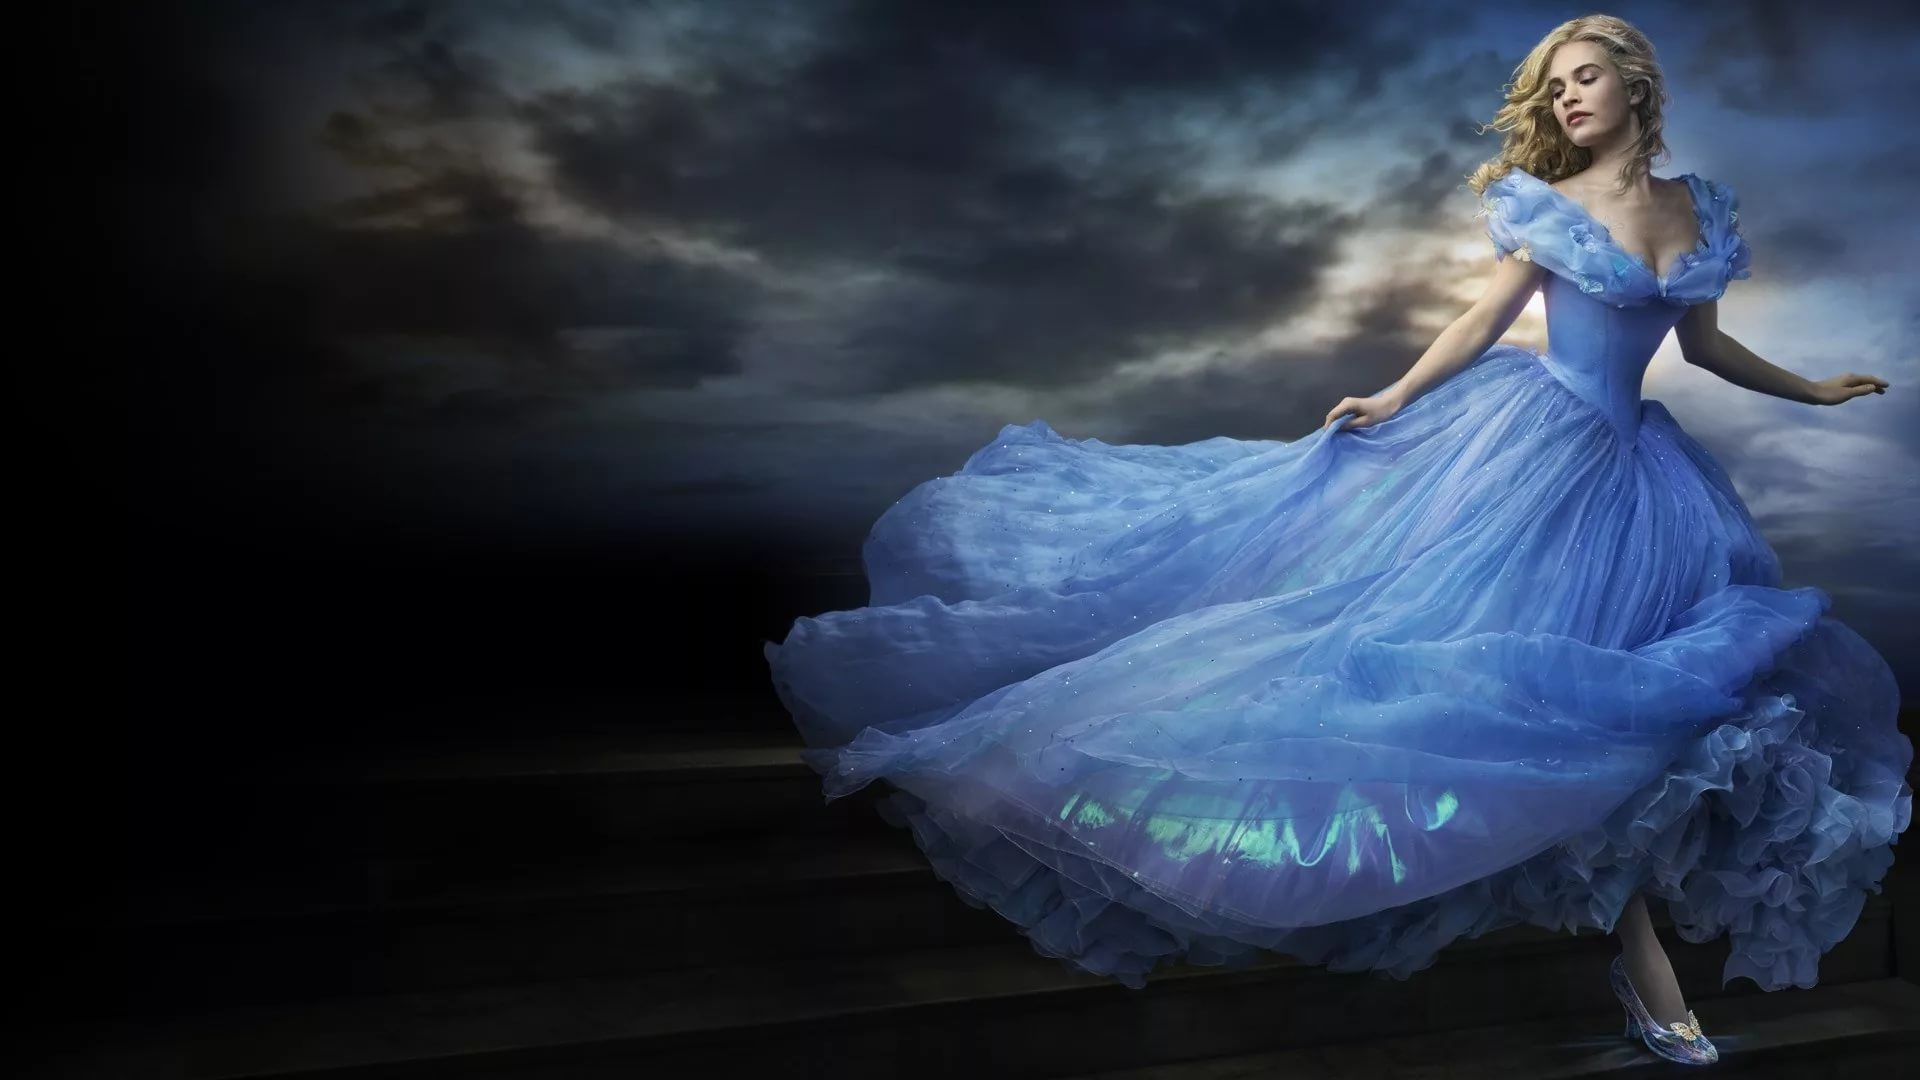 Cinderella download wallpaper image